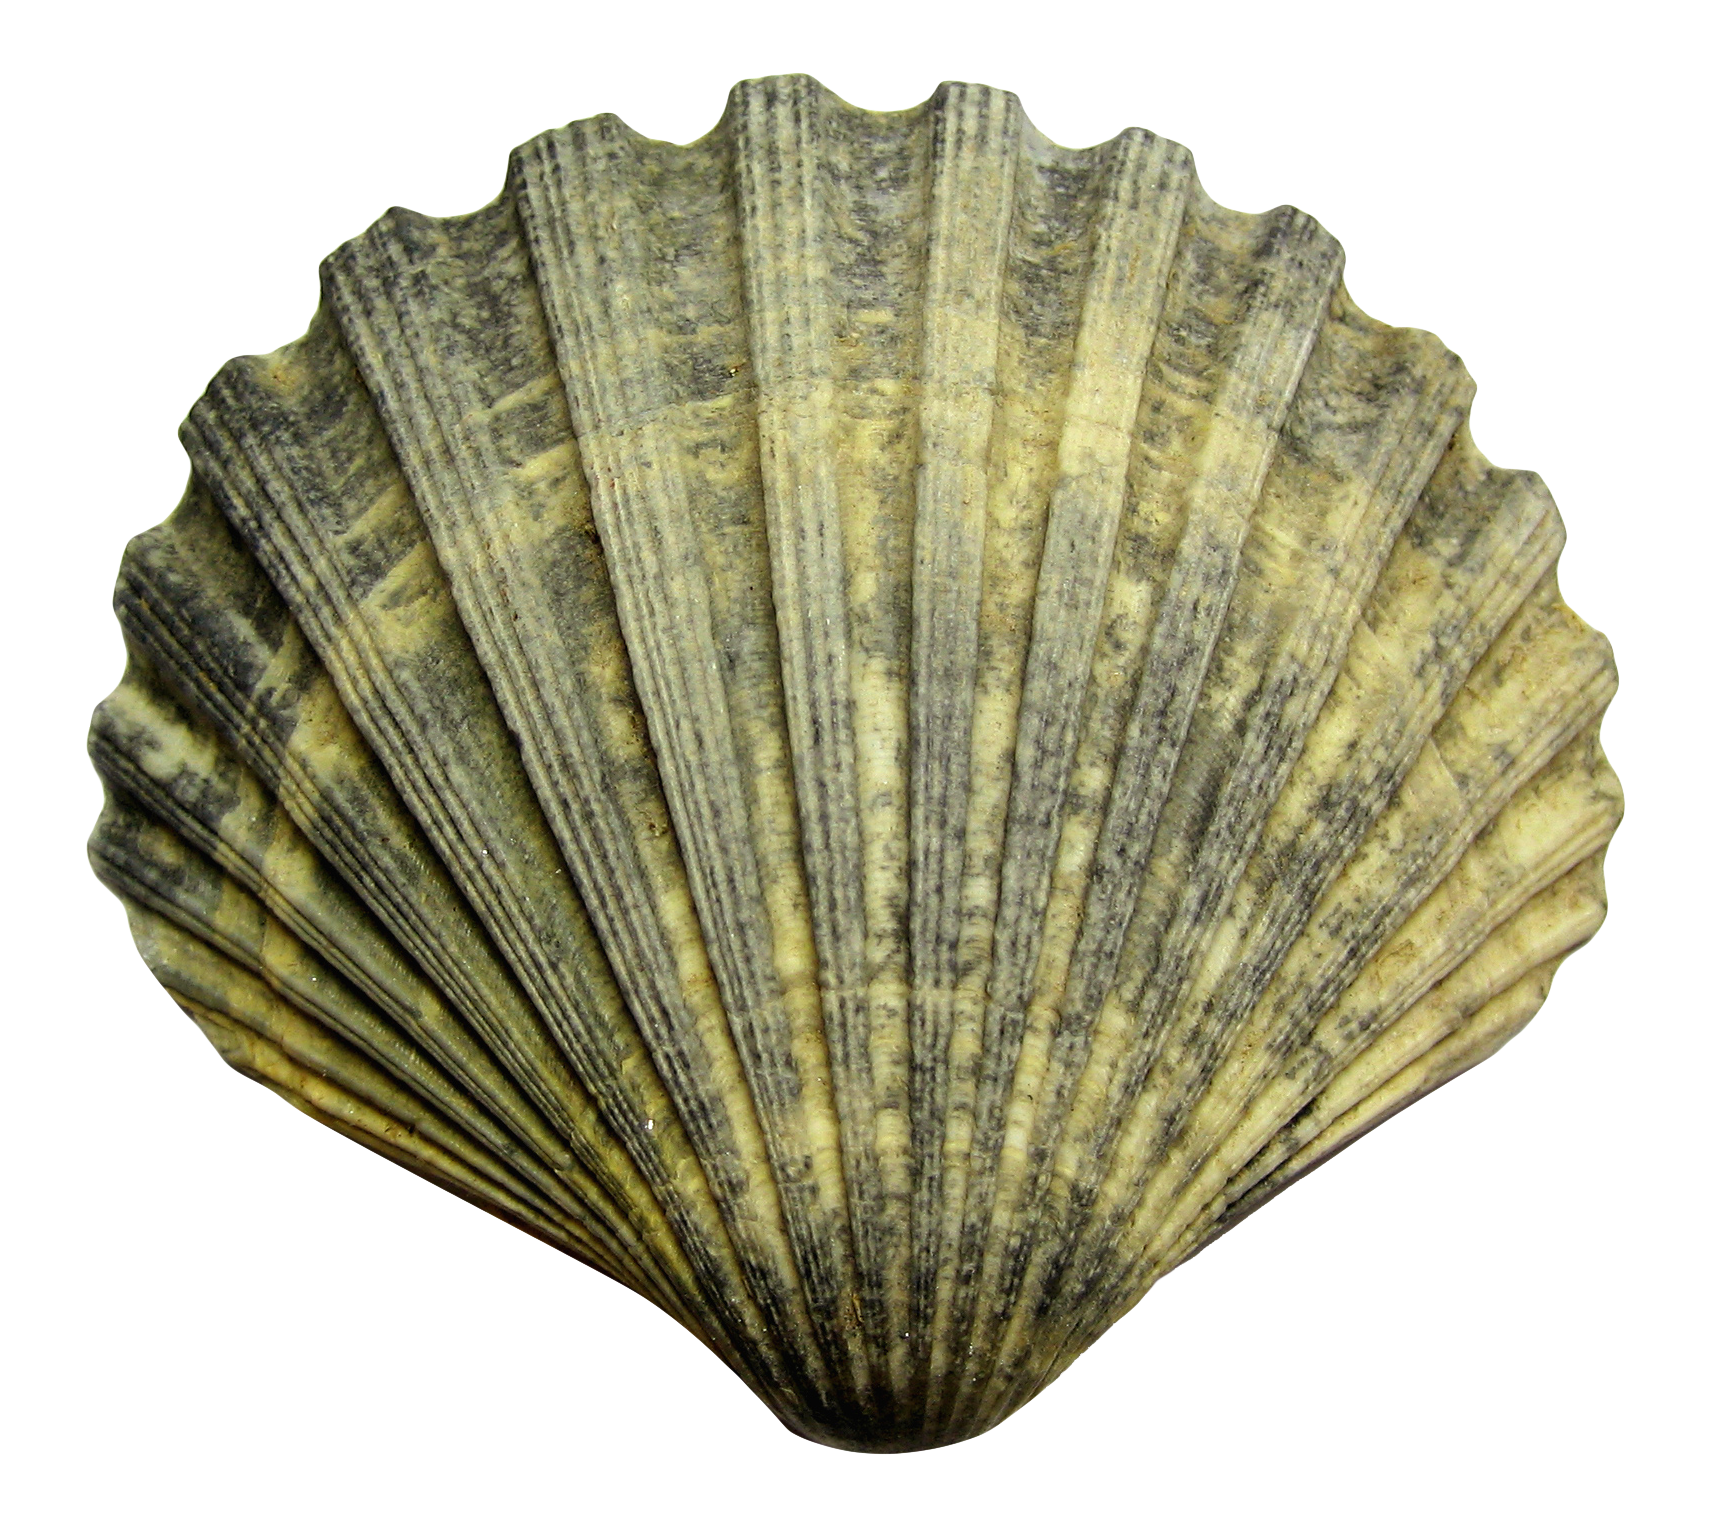 Green shells png. Shell transparent images all